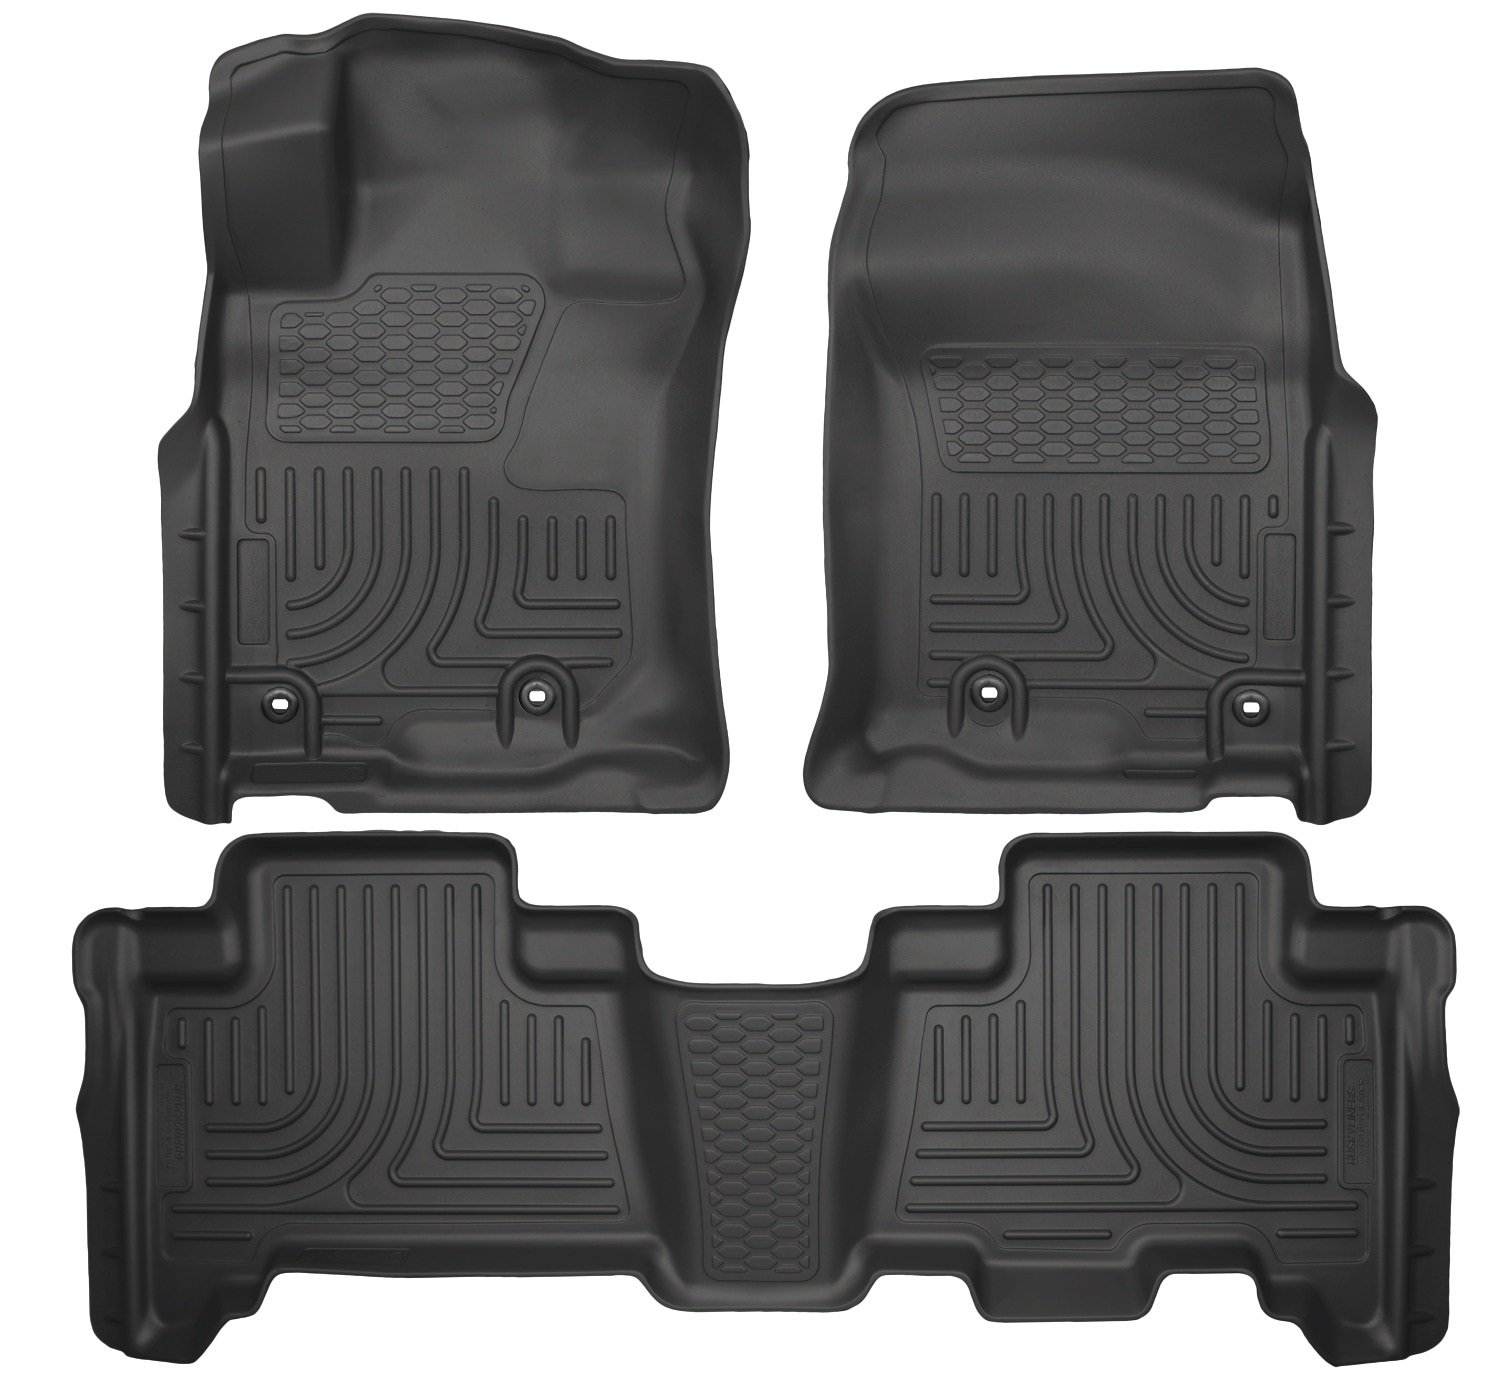 Amazon.com: Husky Liners Front U0026 2nd Seat Floor Liners Fits 4 16 GX460,  13 16 4Runner: Automotive